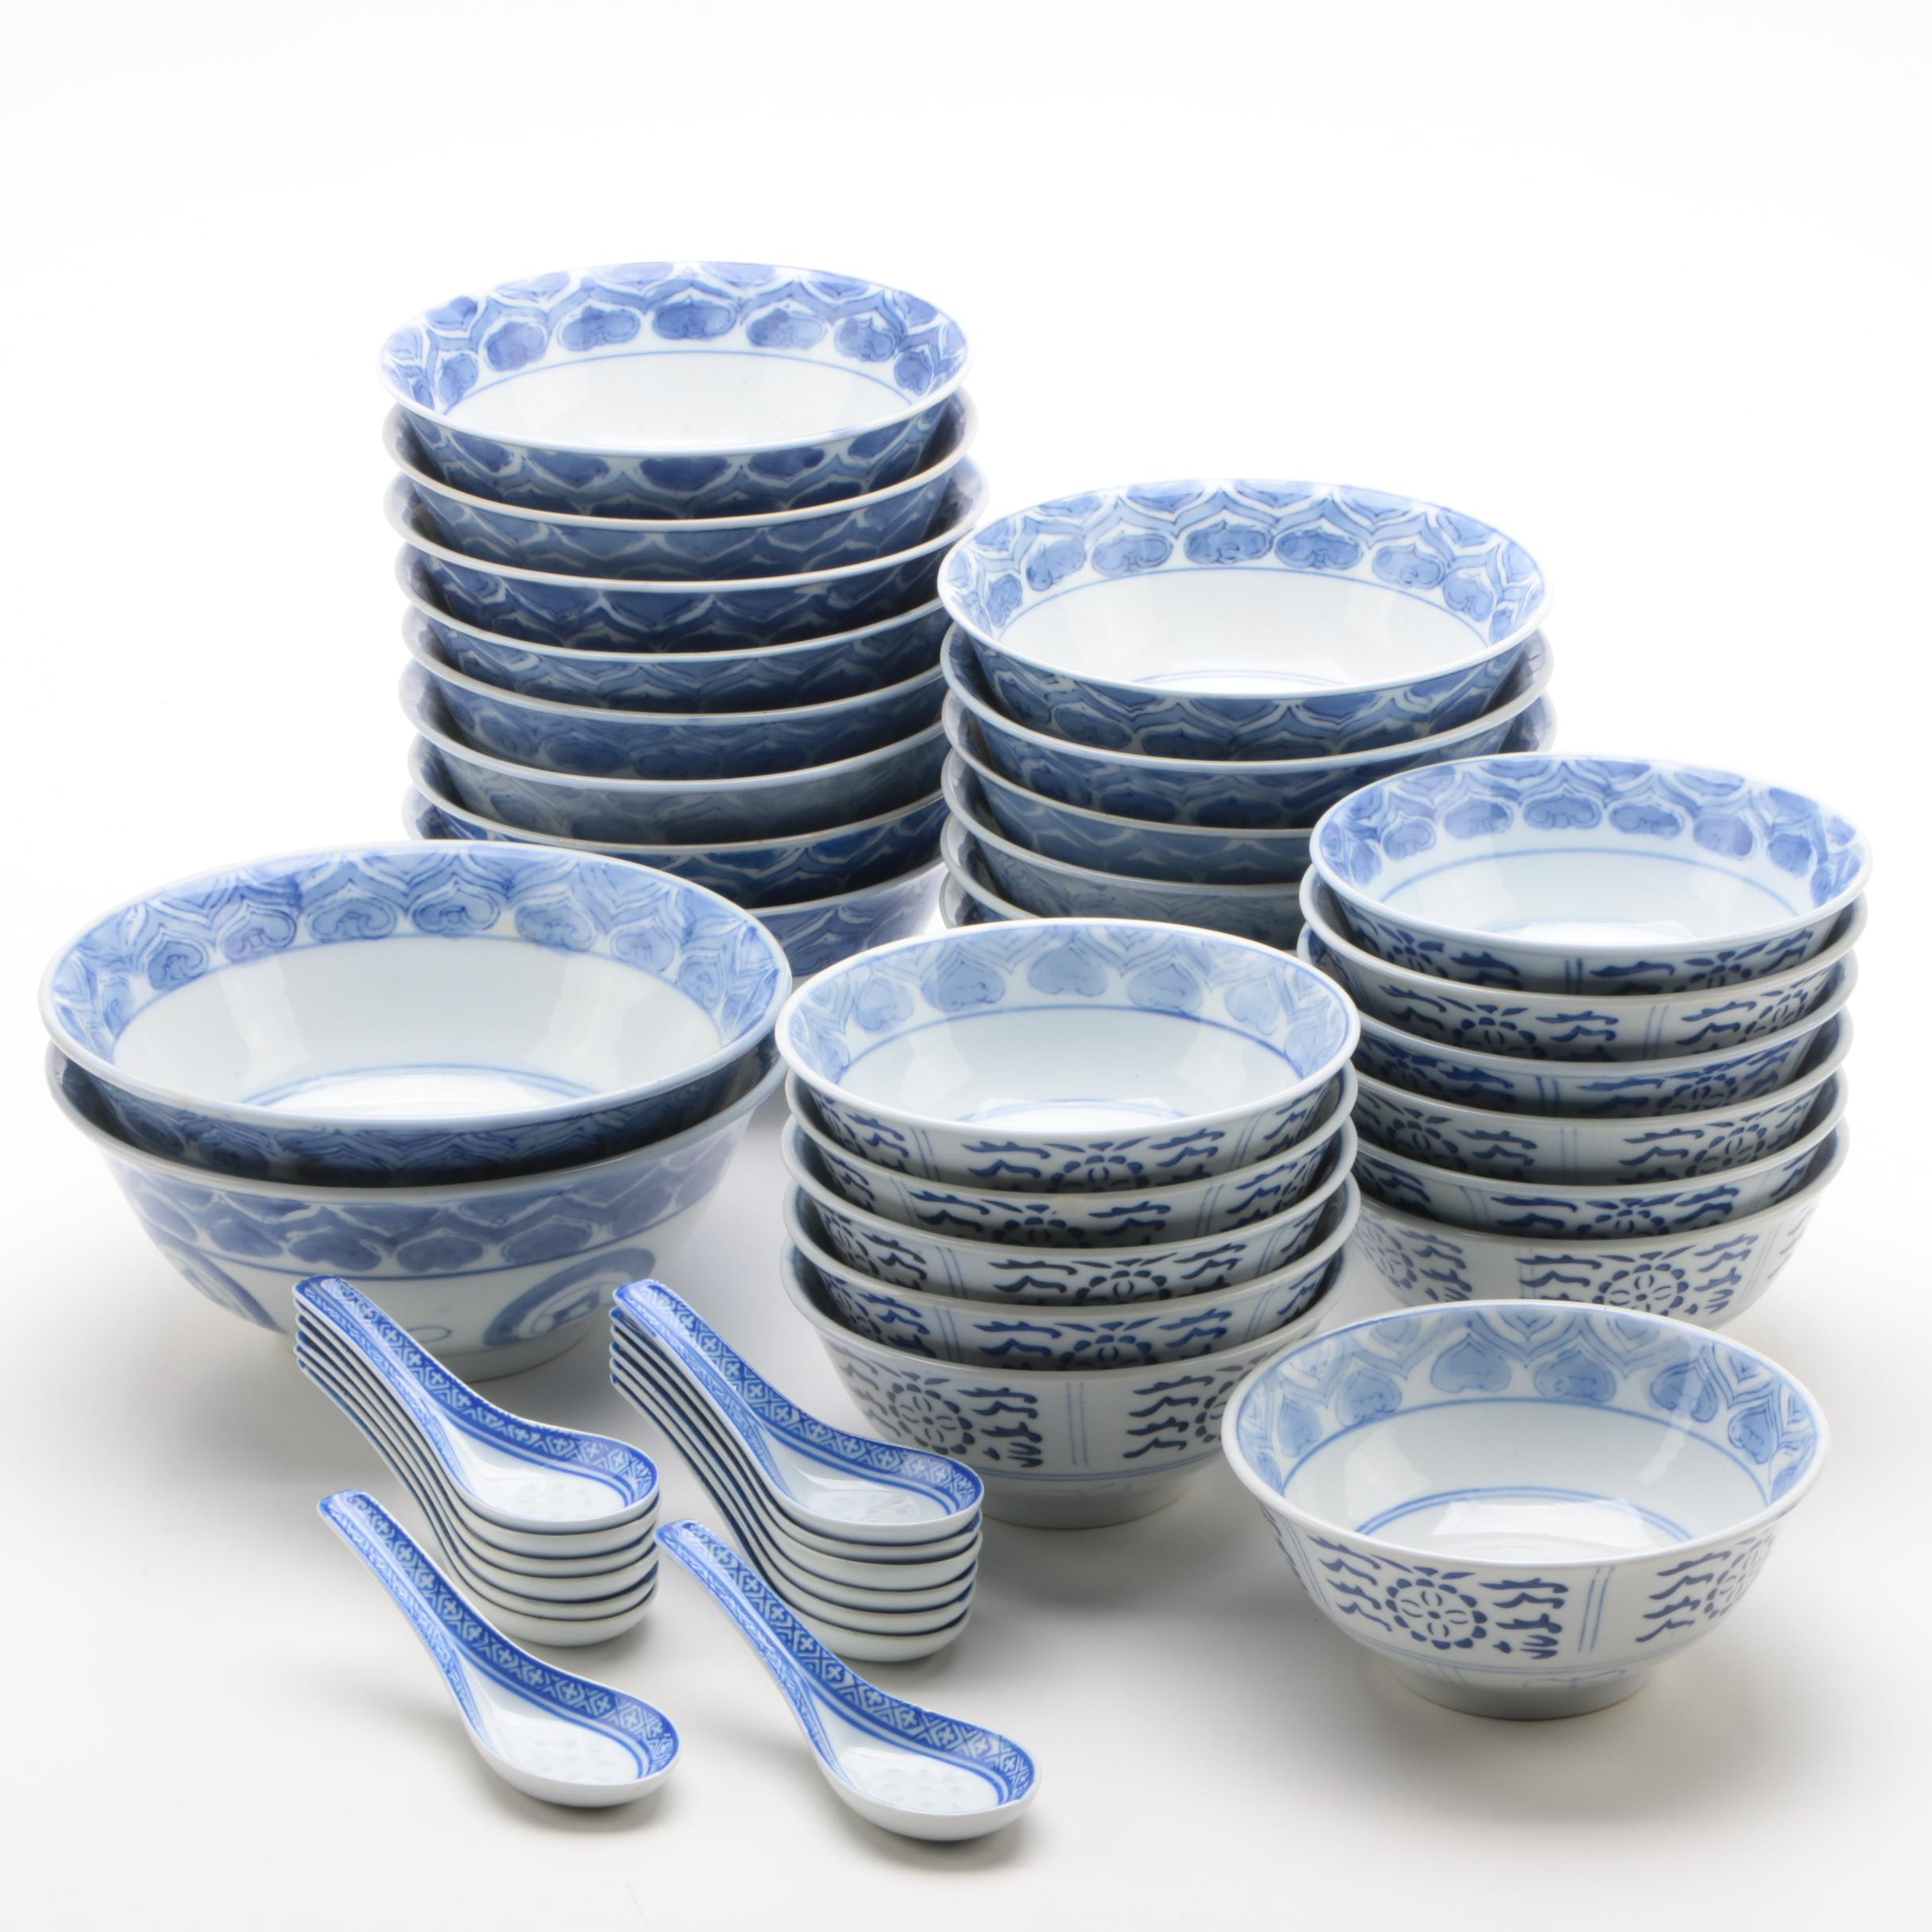 Chinese Blue and White Porcelain Rice Bowls and Spoons